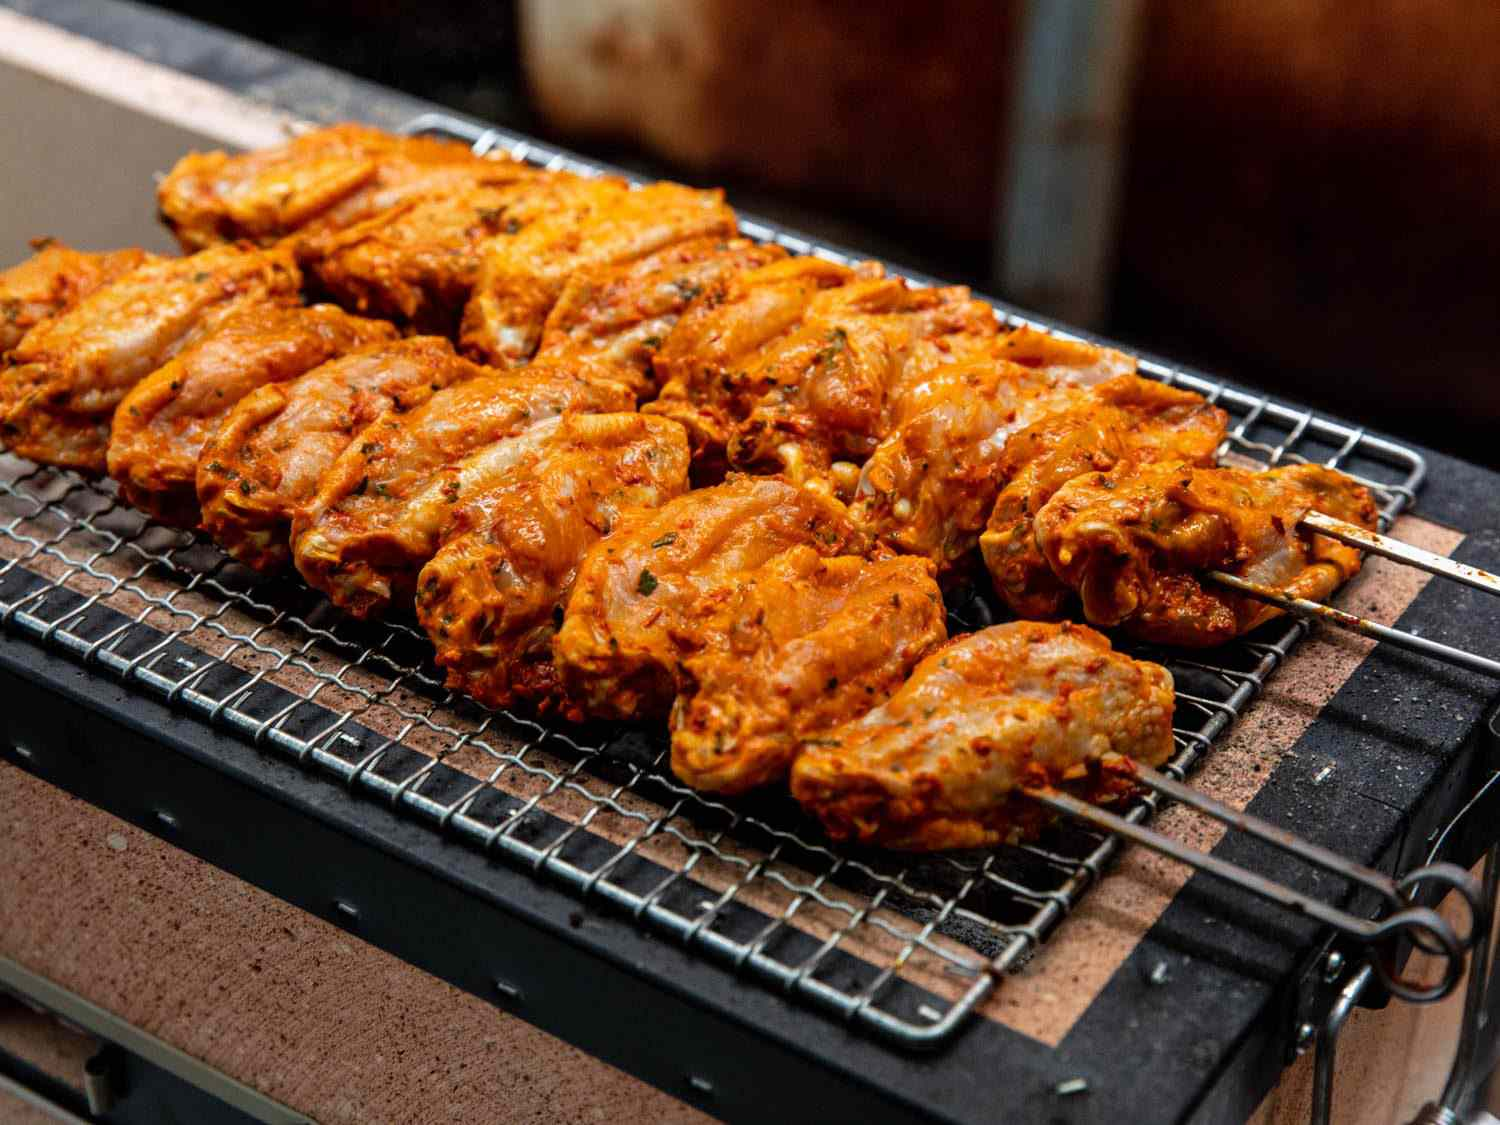 Turkish-style wings that have just begun to cook on top of a mesh wire rack on a Japanese konro charcoal grill